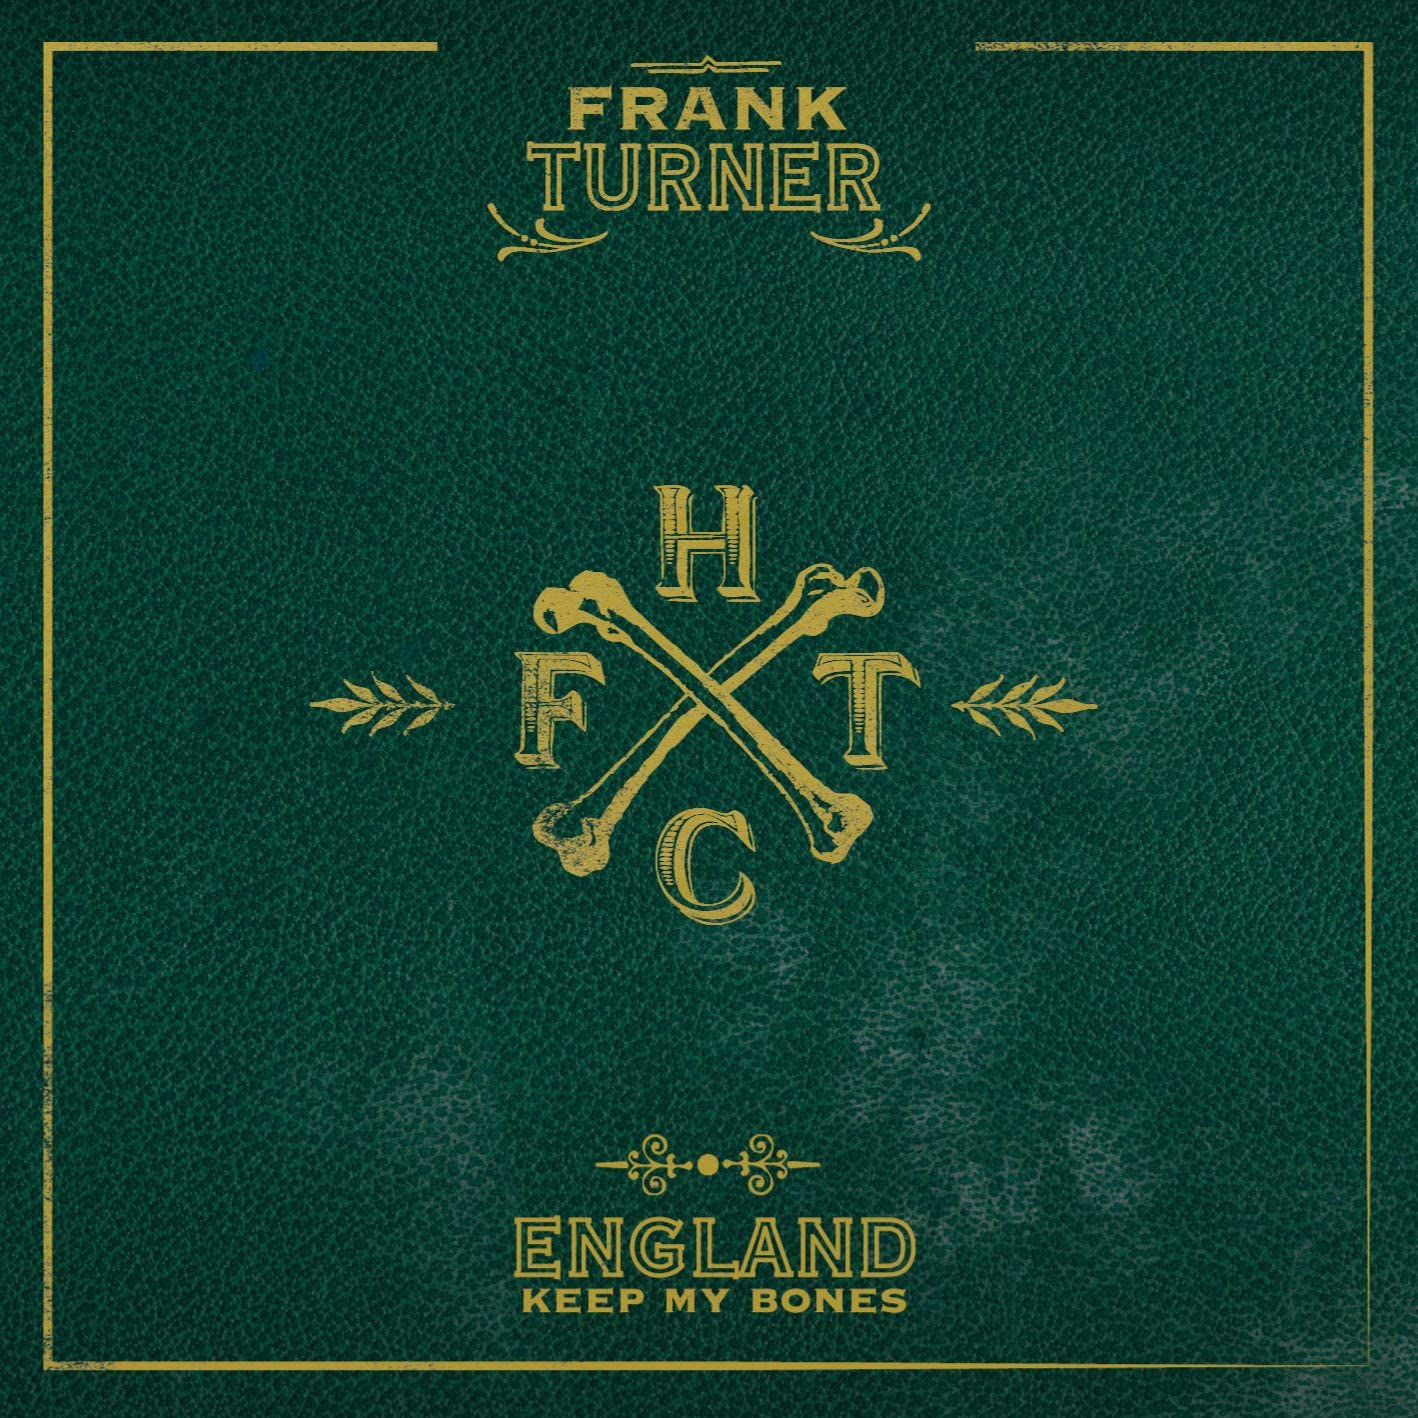 Turner, Frank/England Keep My Bones [LP]